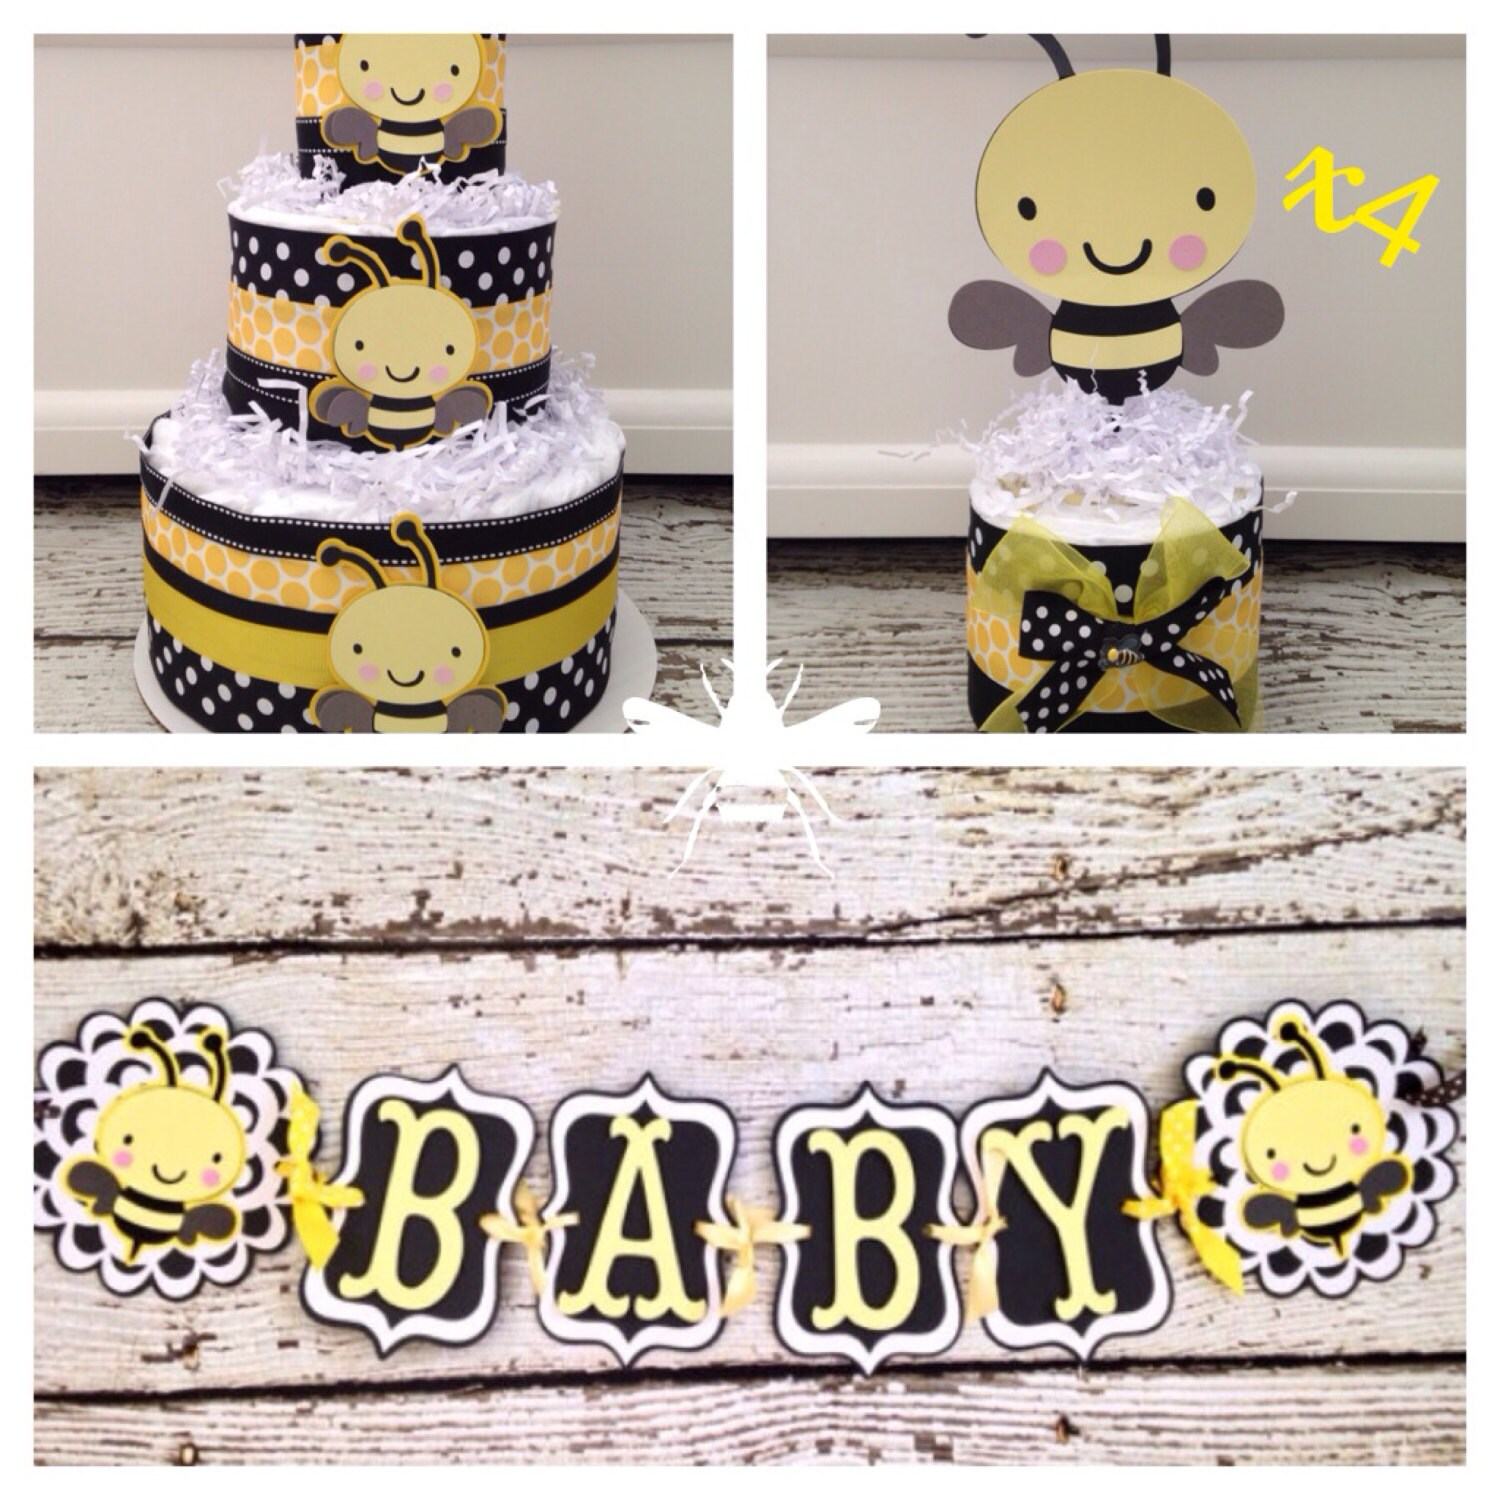 bee bumble to shower party a decor zebra decorations celebrations baby supplies mommy